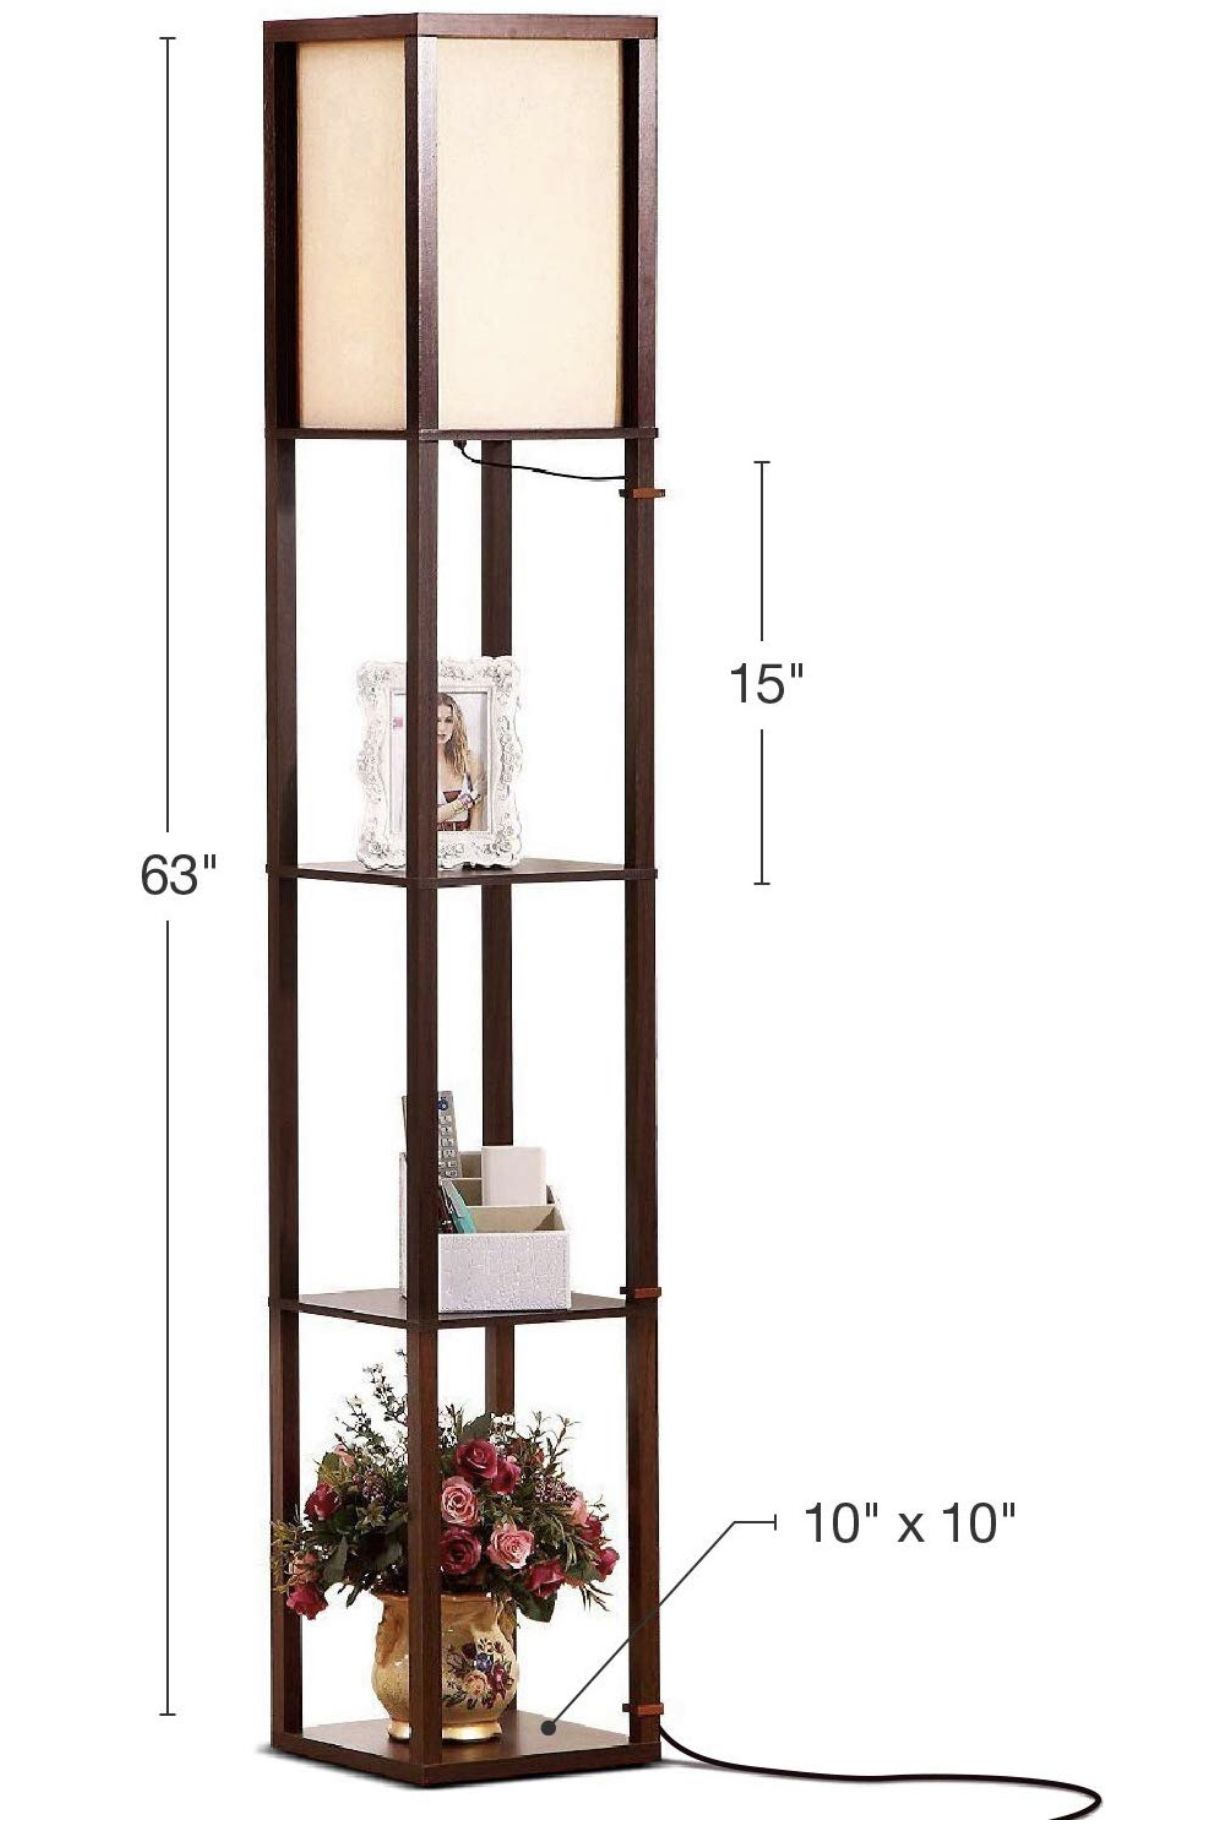 Led Shelf Floor Lamp For Living Room Bedrooms Floor Lamp With Shelves Contemporary Floor Lamps Modern Floor Lamps